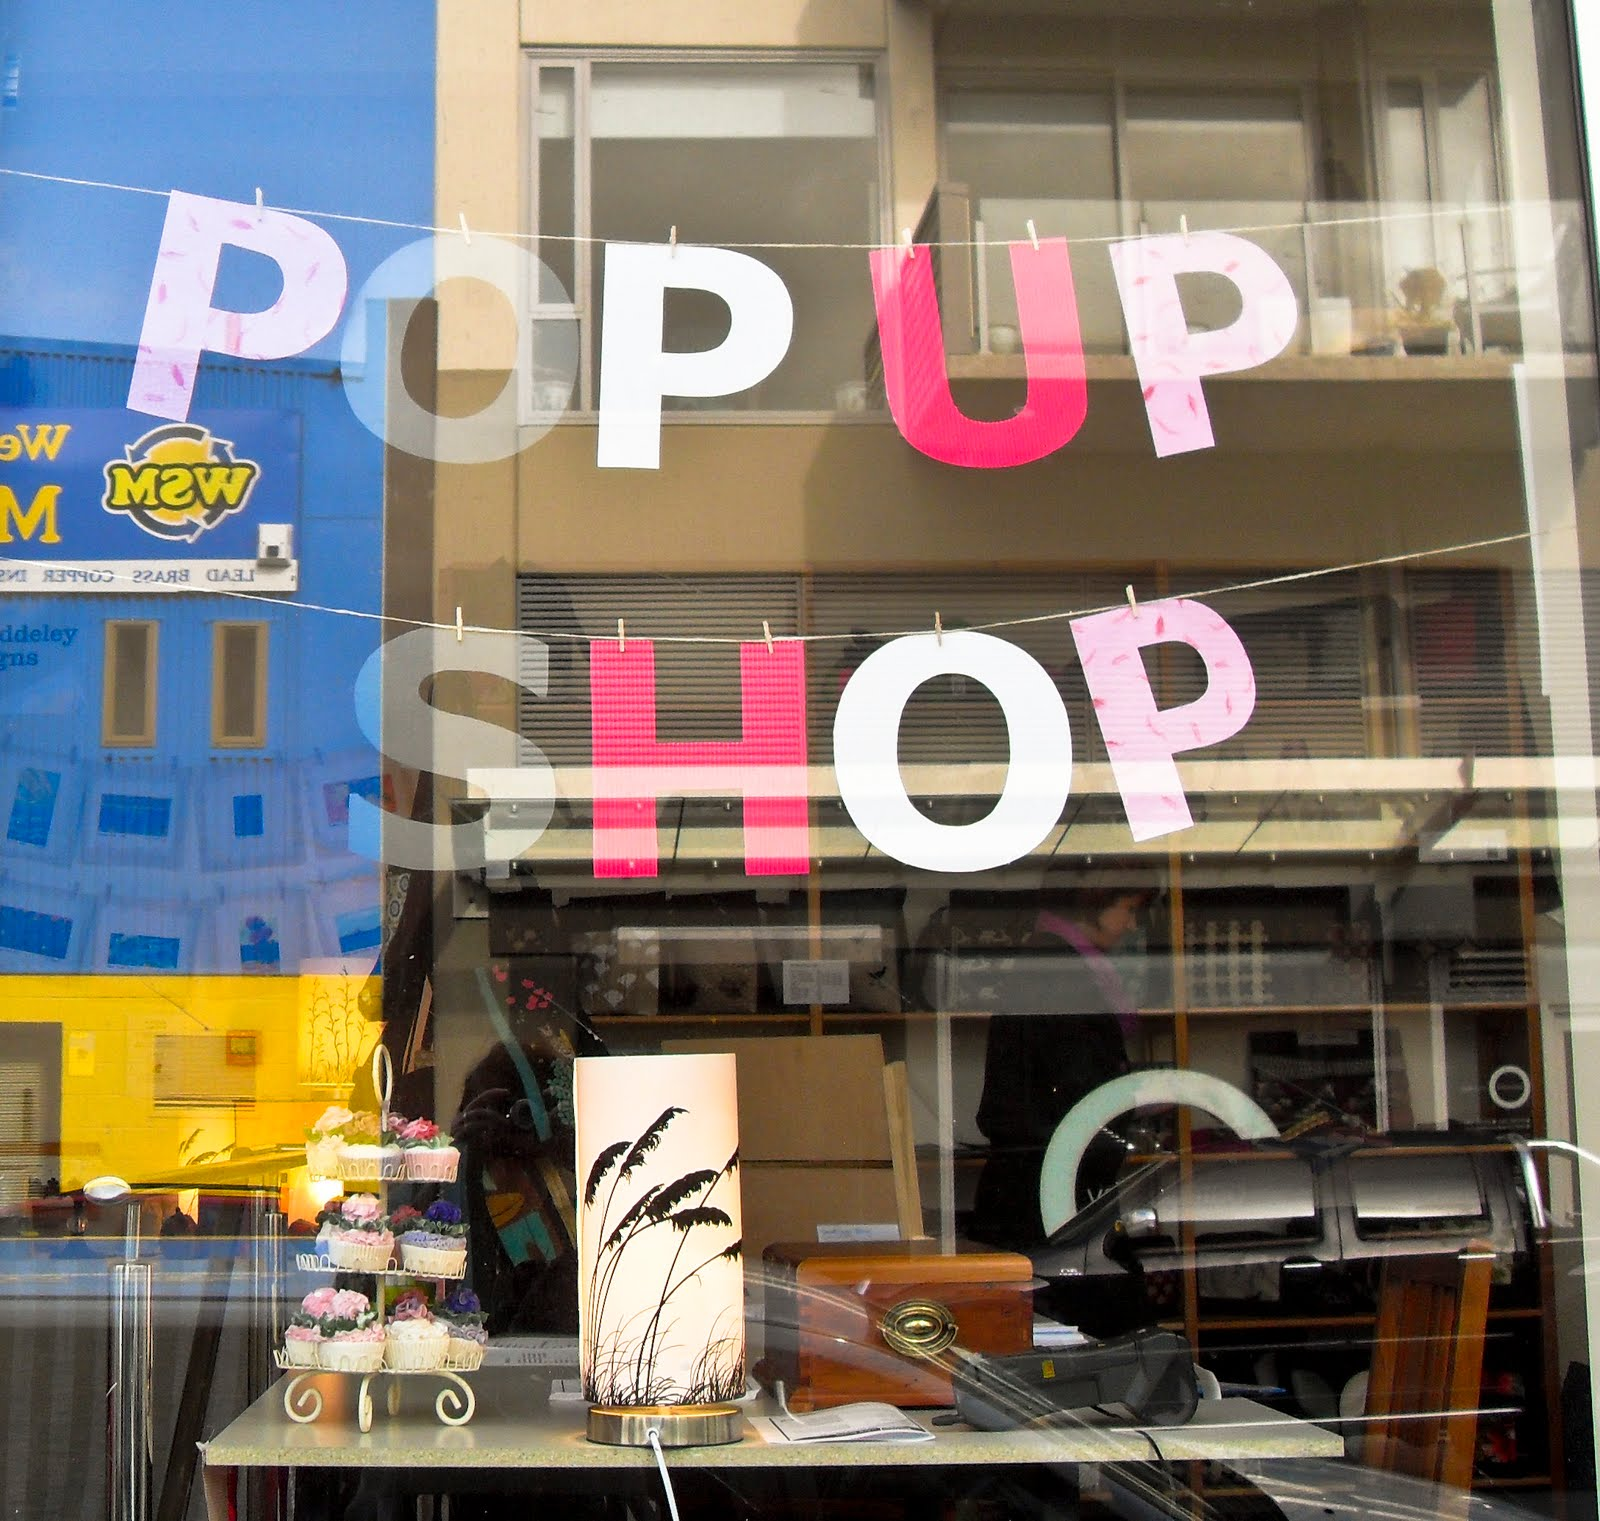 Starting a retail business? Here's everything you need to know about pop up shops